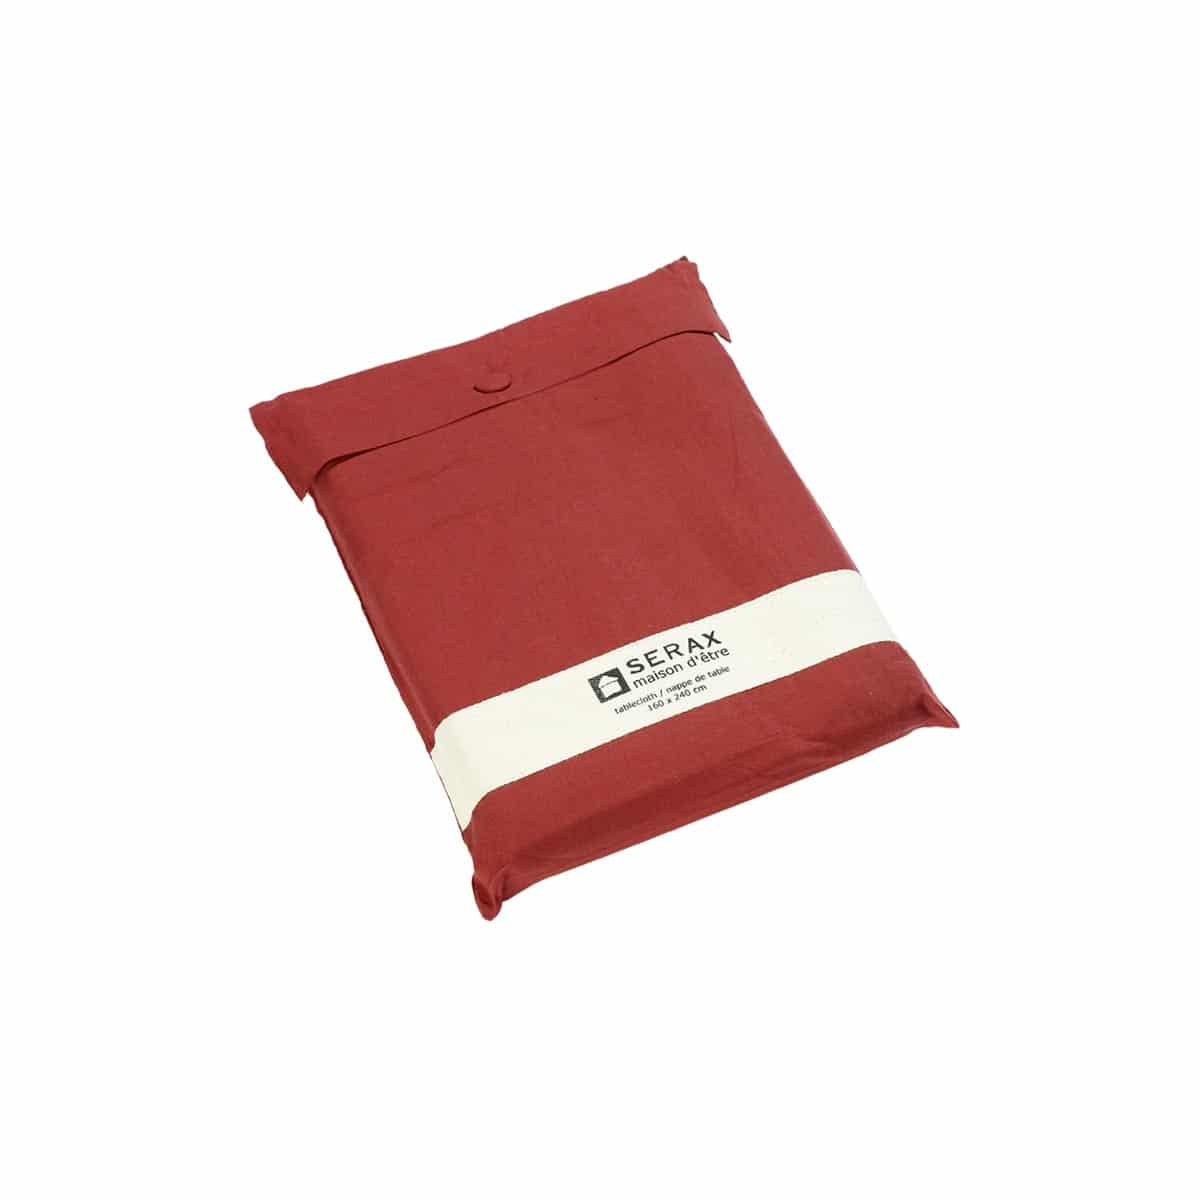 nappe de table hot tabasco serax rouge zeeloft